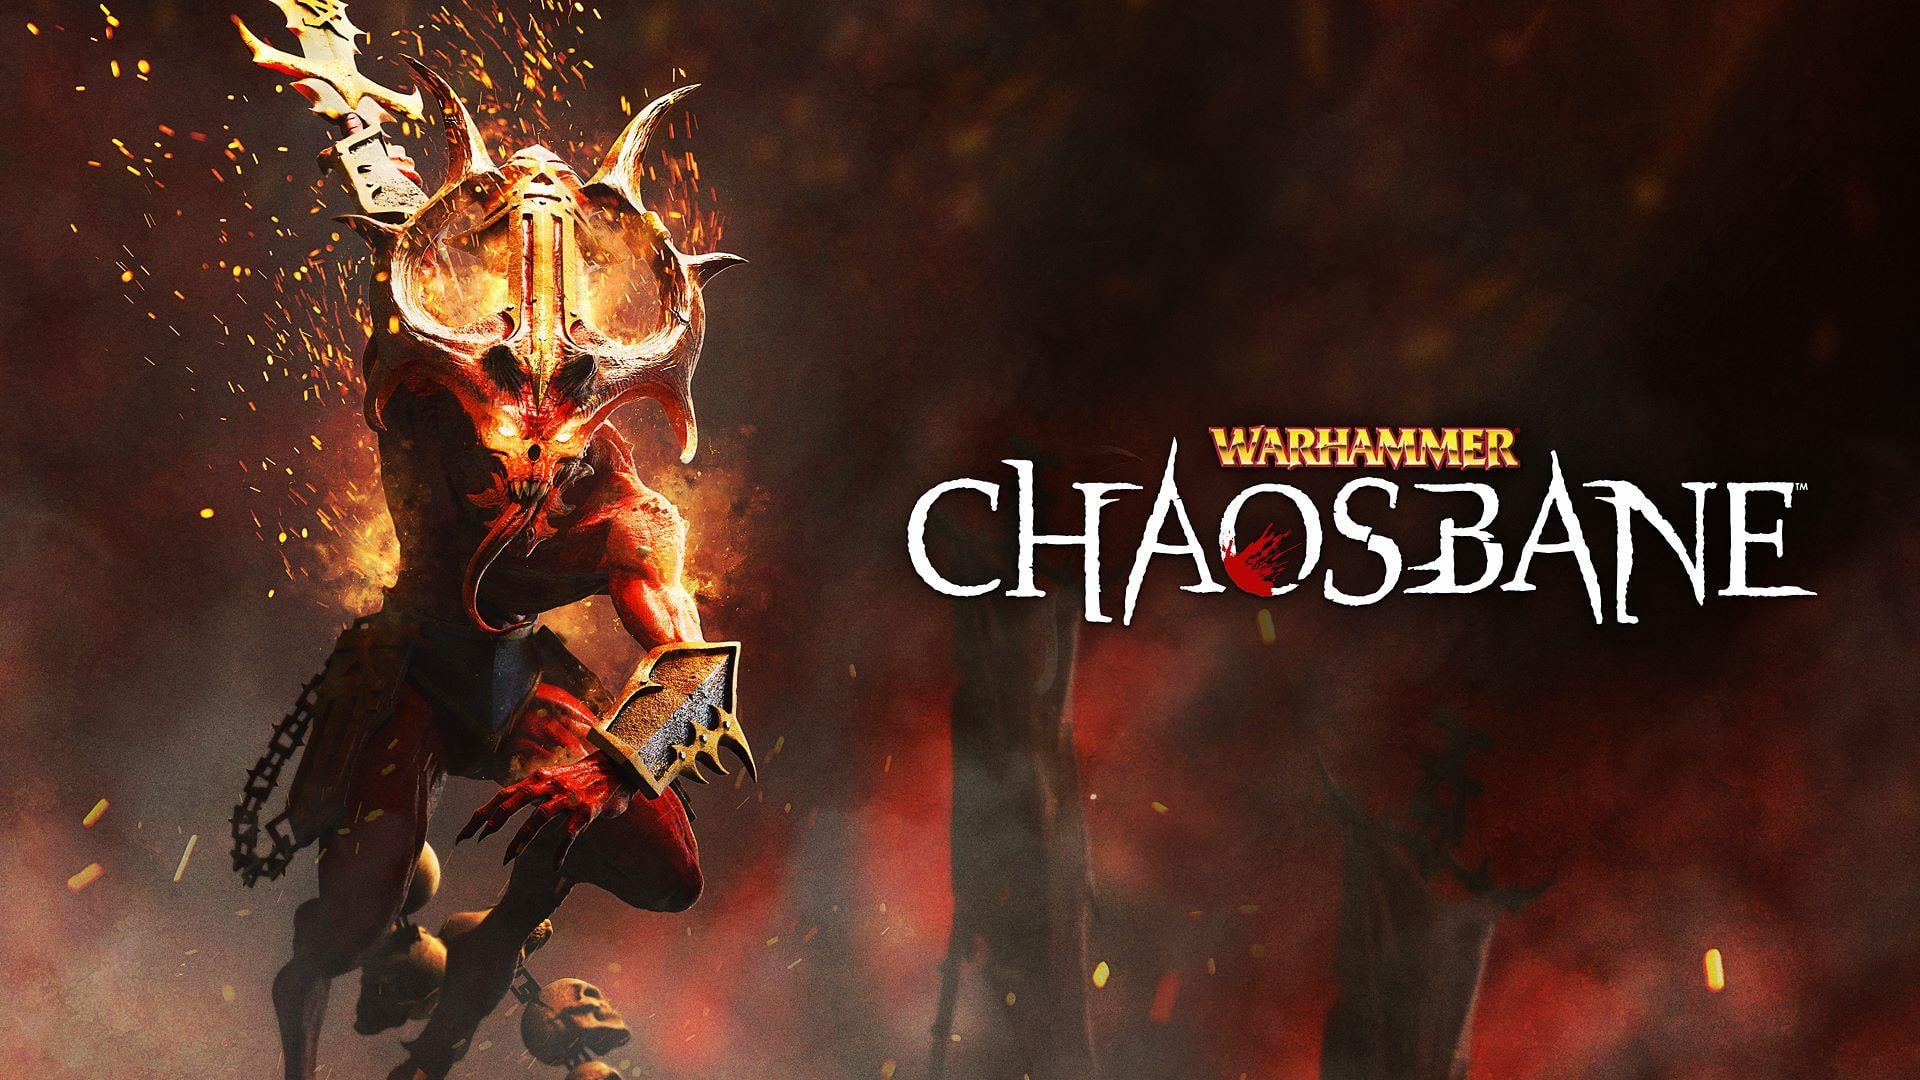 Warhammer Chaosbane Xbox One Full Version Free Download